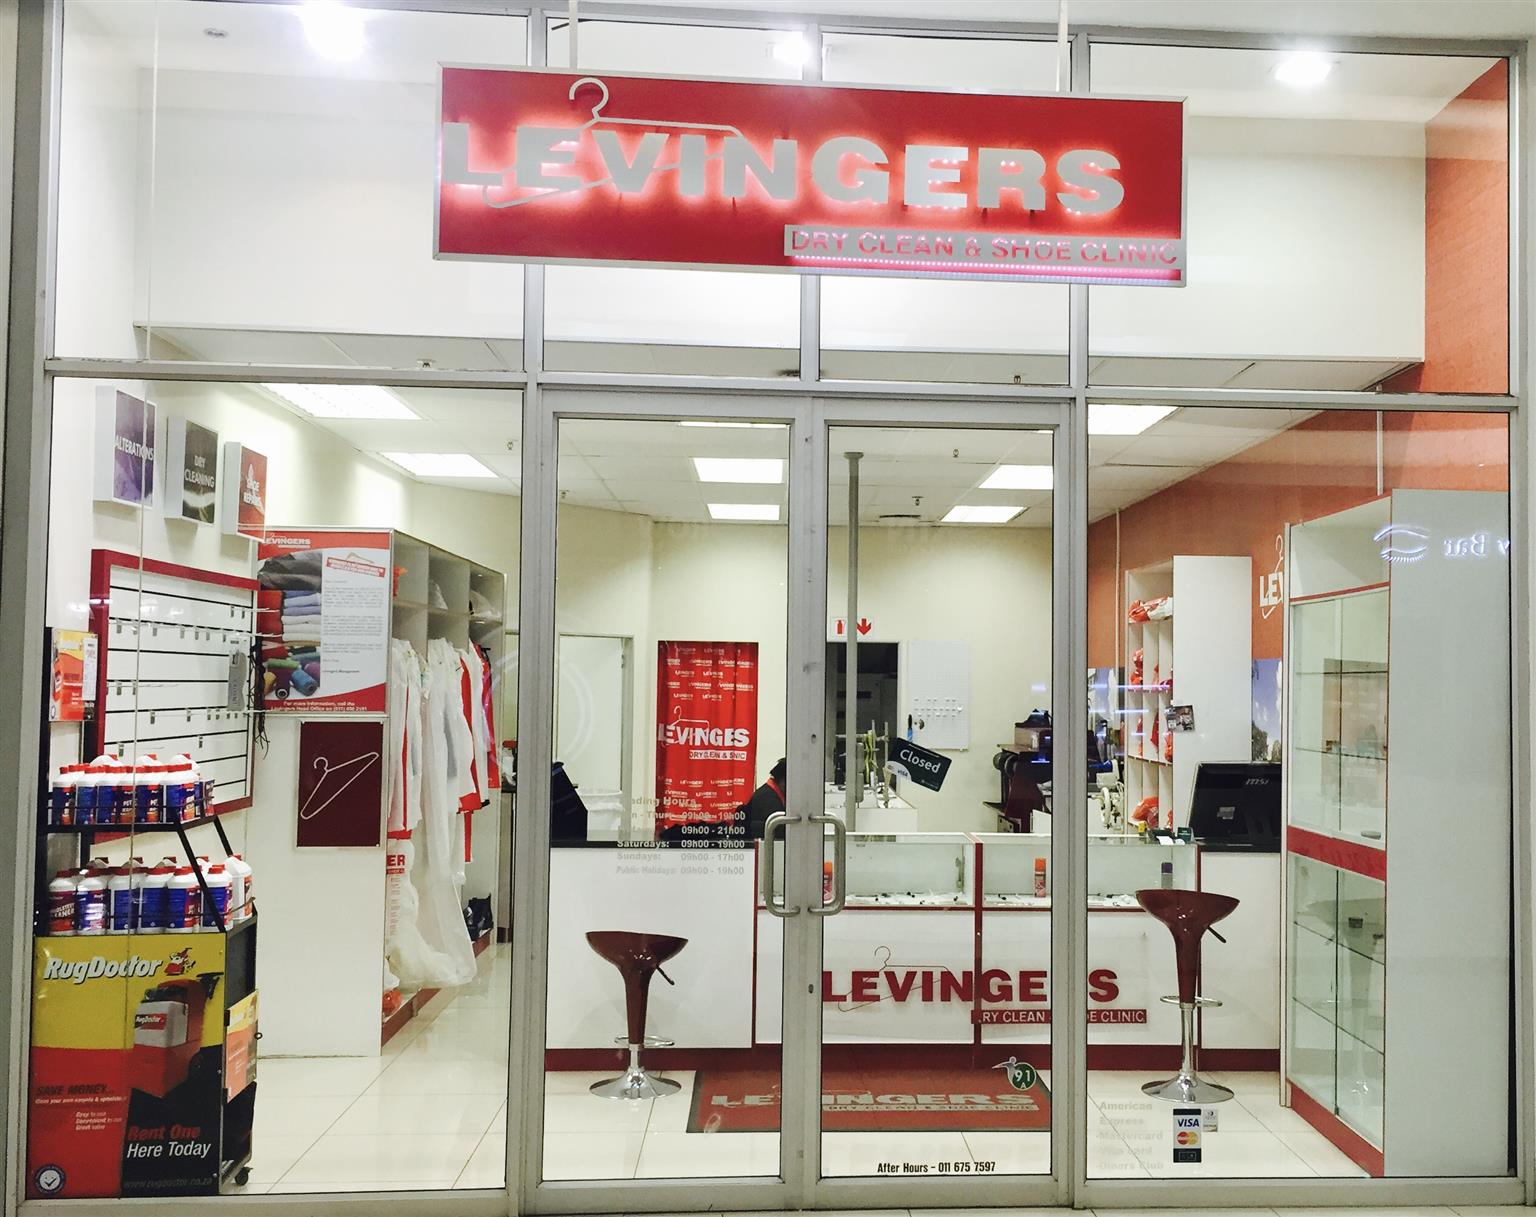 Levingers Franchise - Dry Cleaners and Shoe Repairs - Clearwater Mall